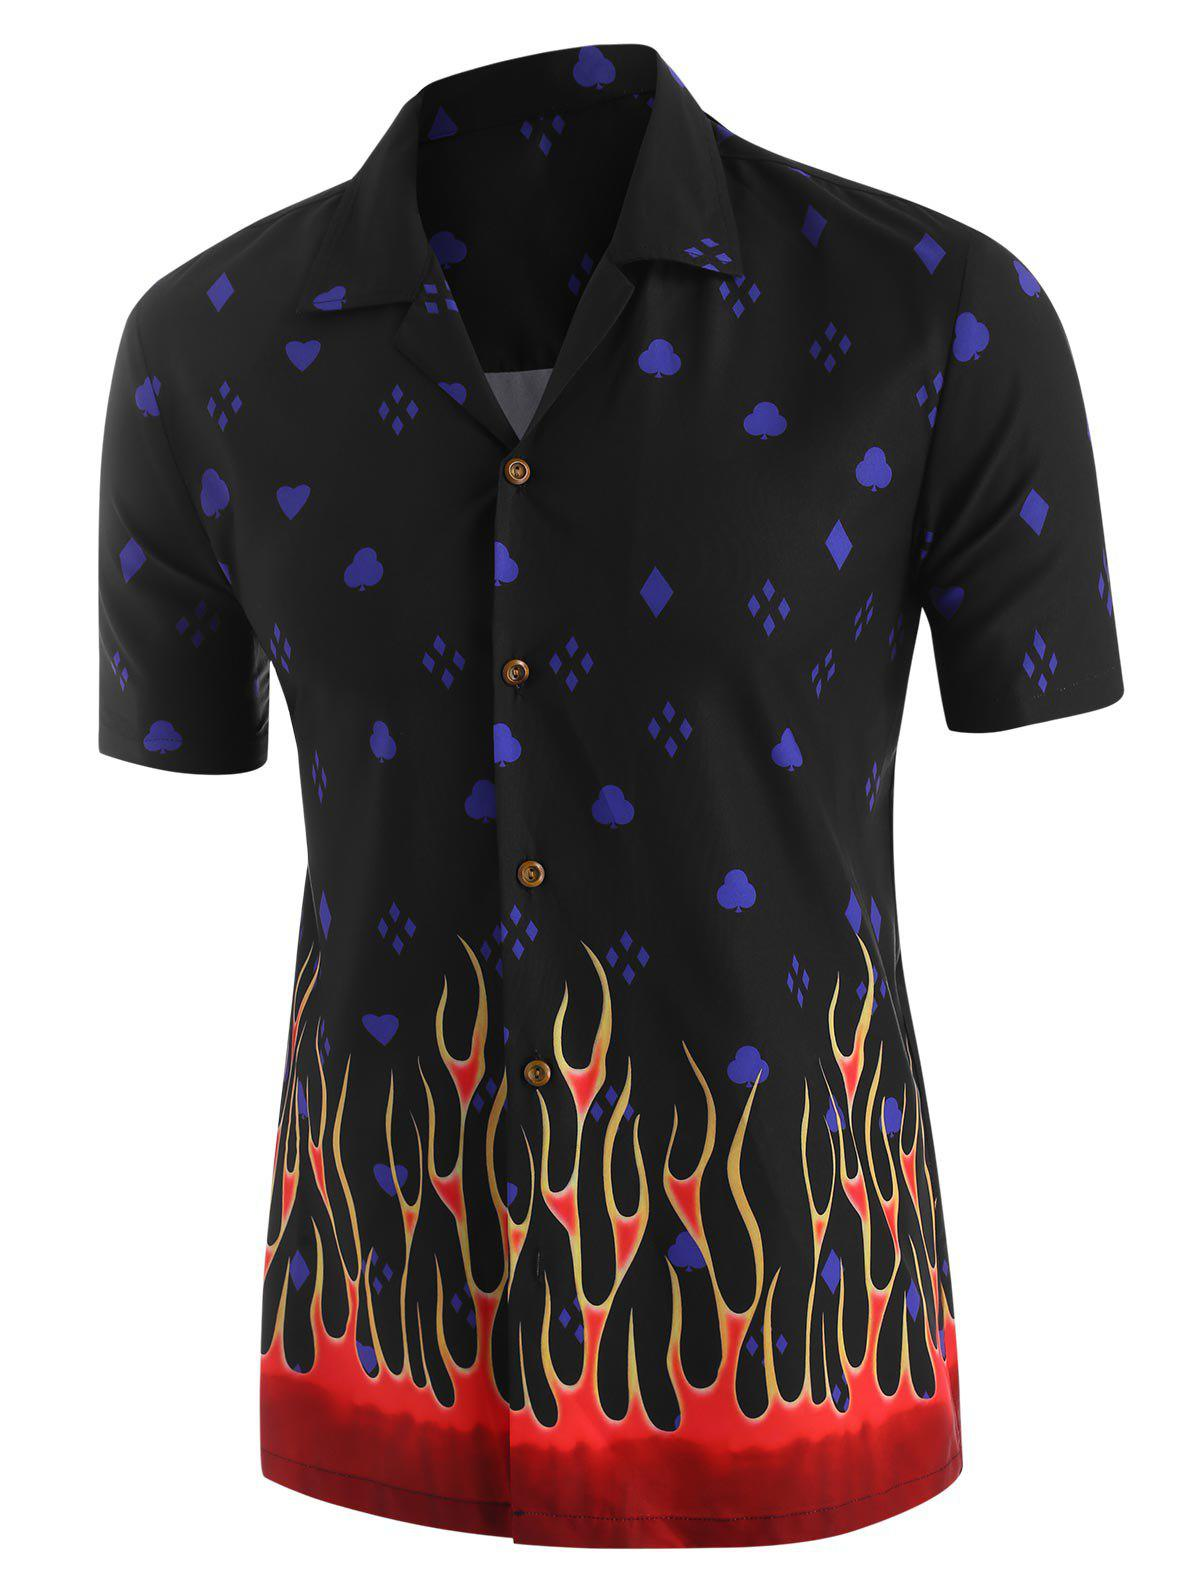 Hot Flame Geometric Print Short Sleeve Shirt